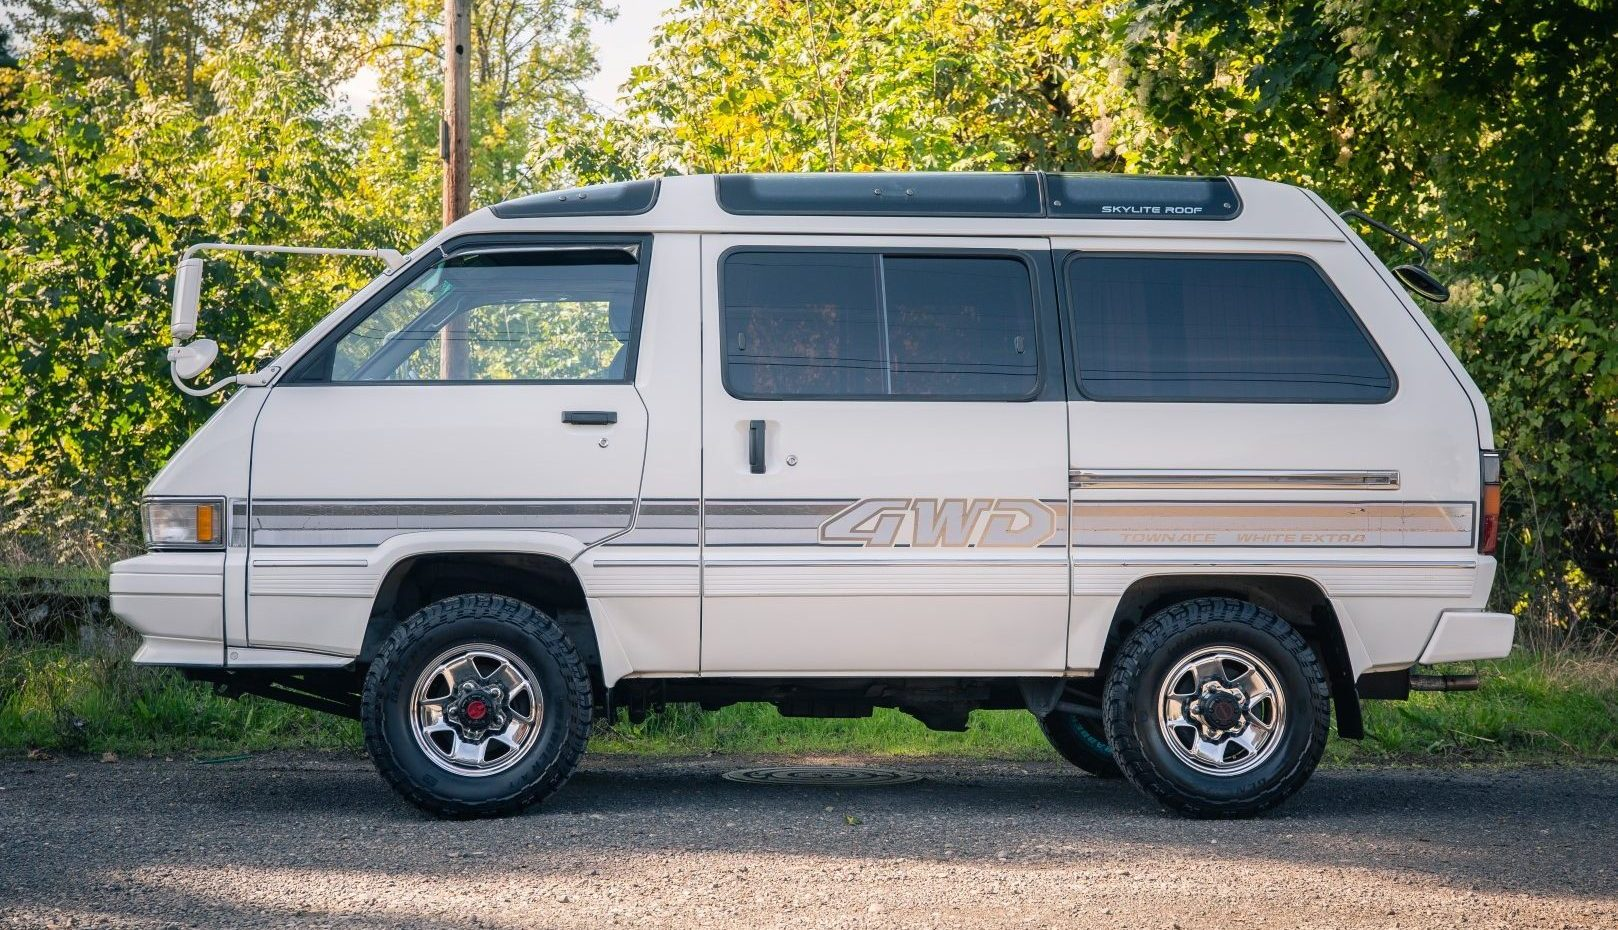 Toyota 4x4 Van for sale Portland, OR by Ottoex